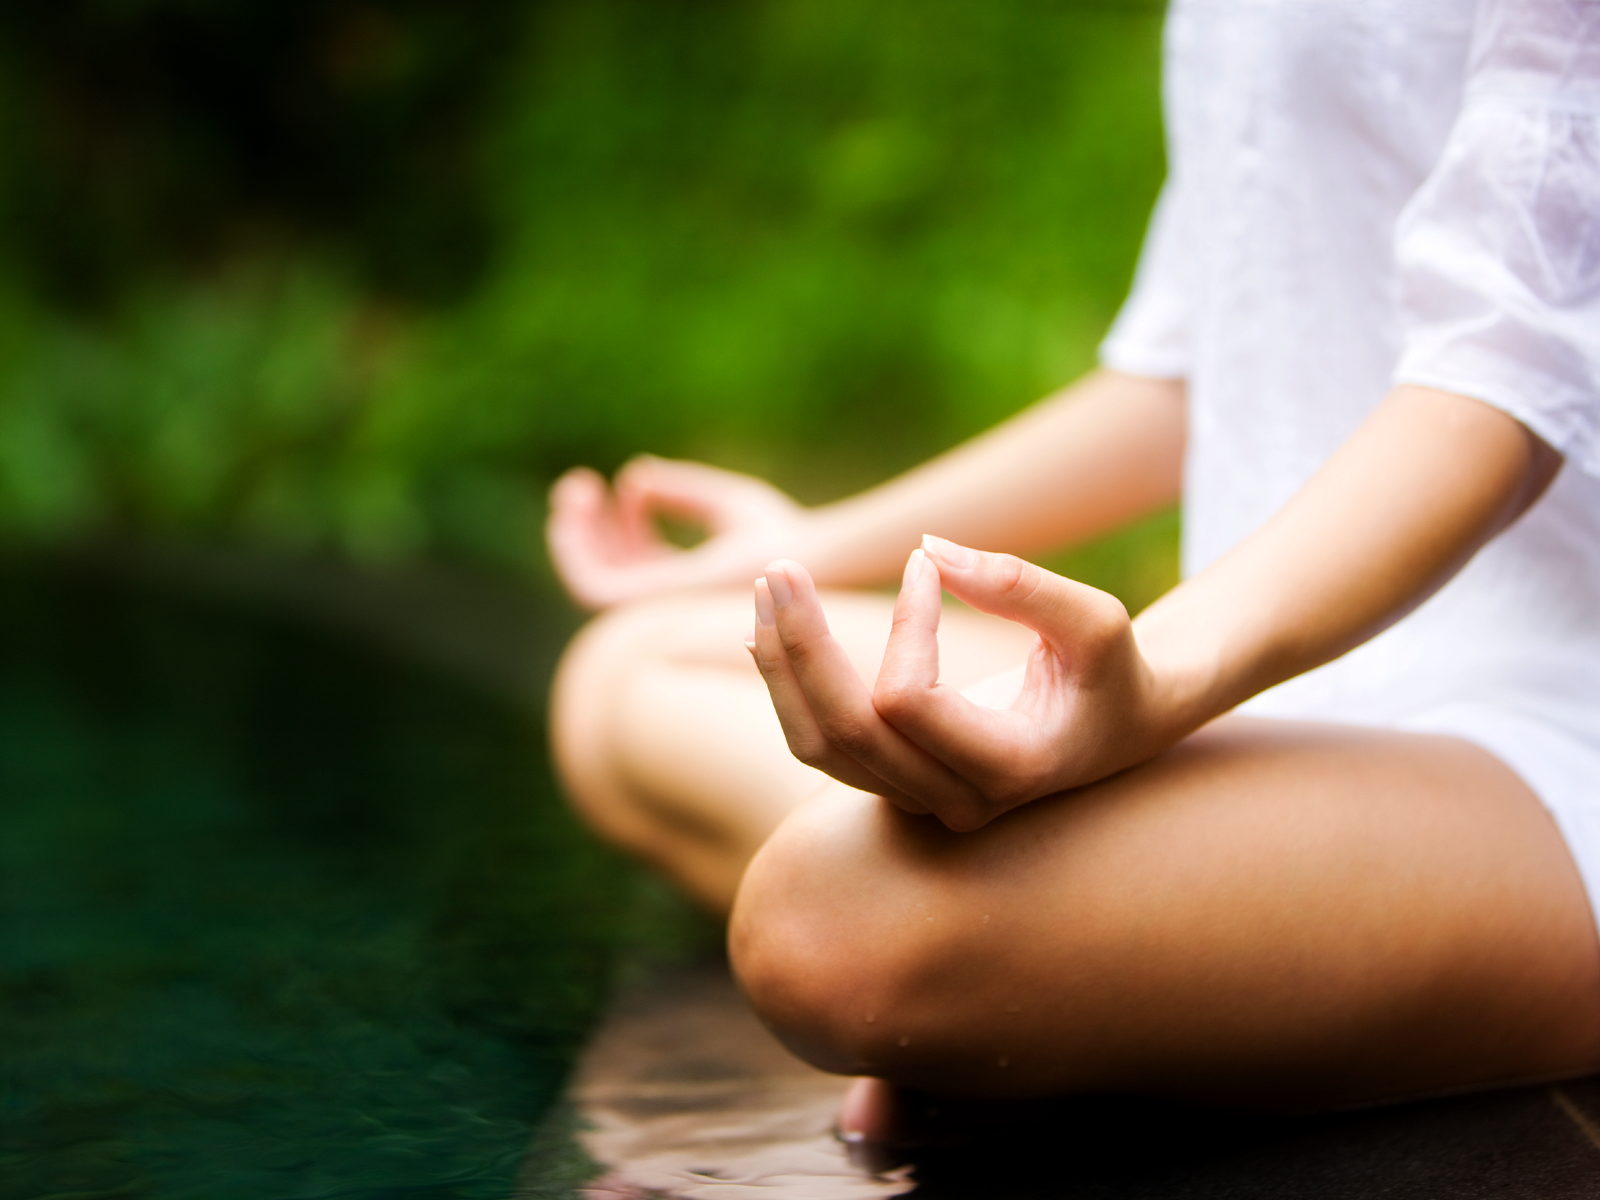 Meditation is one of the lifestyle strategies one can take to improve depressed mood.